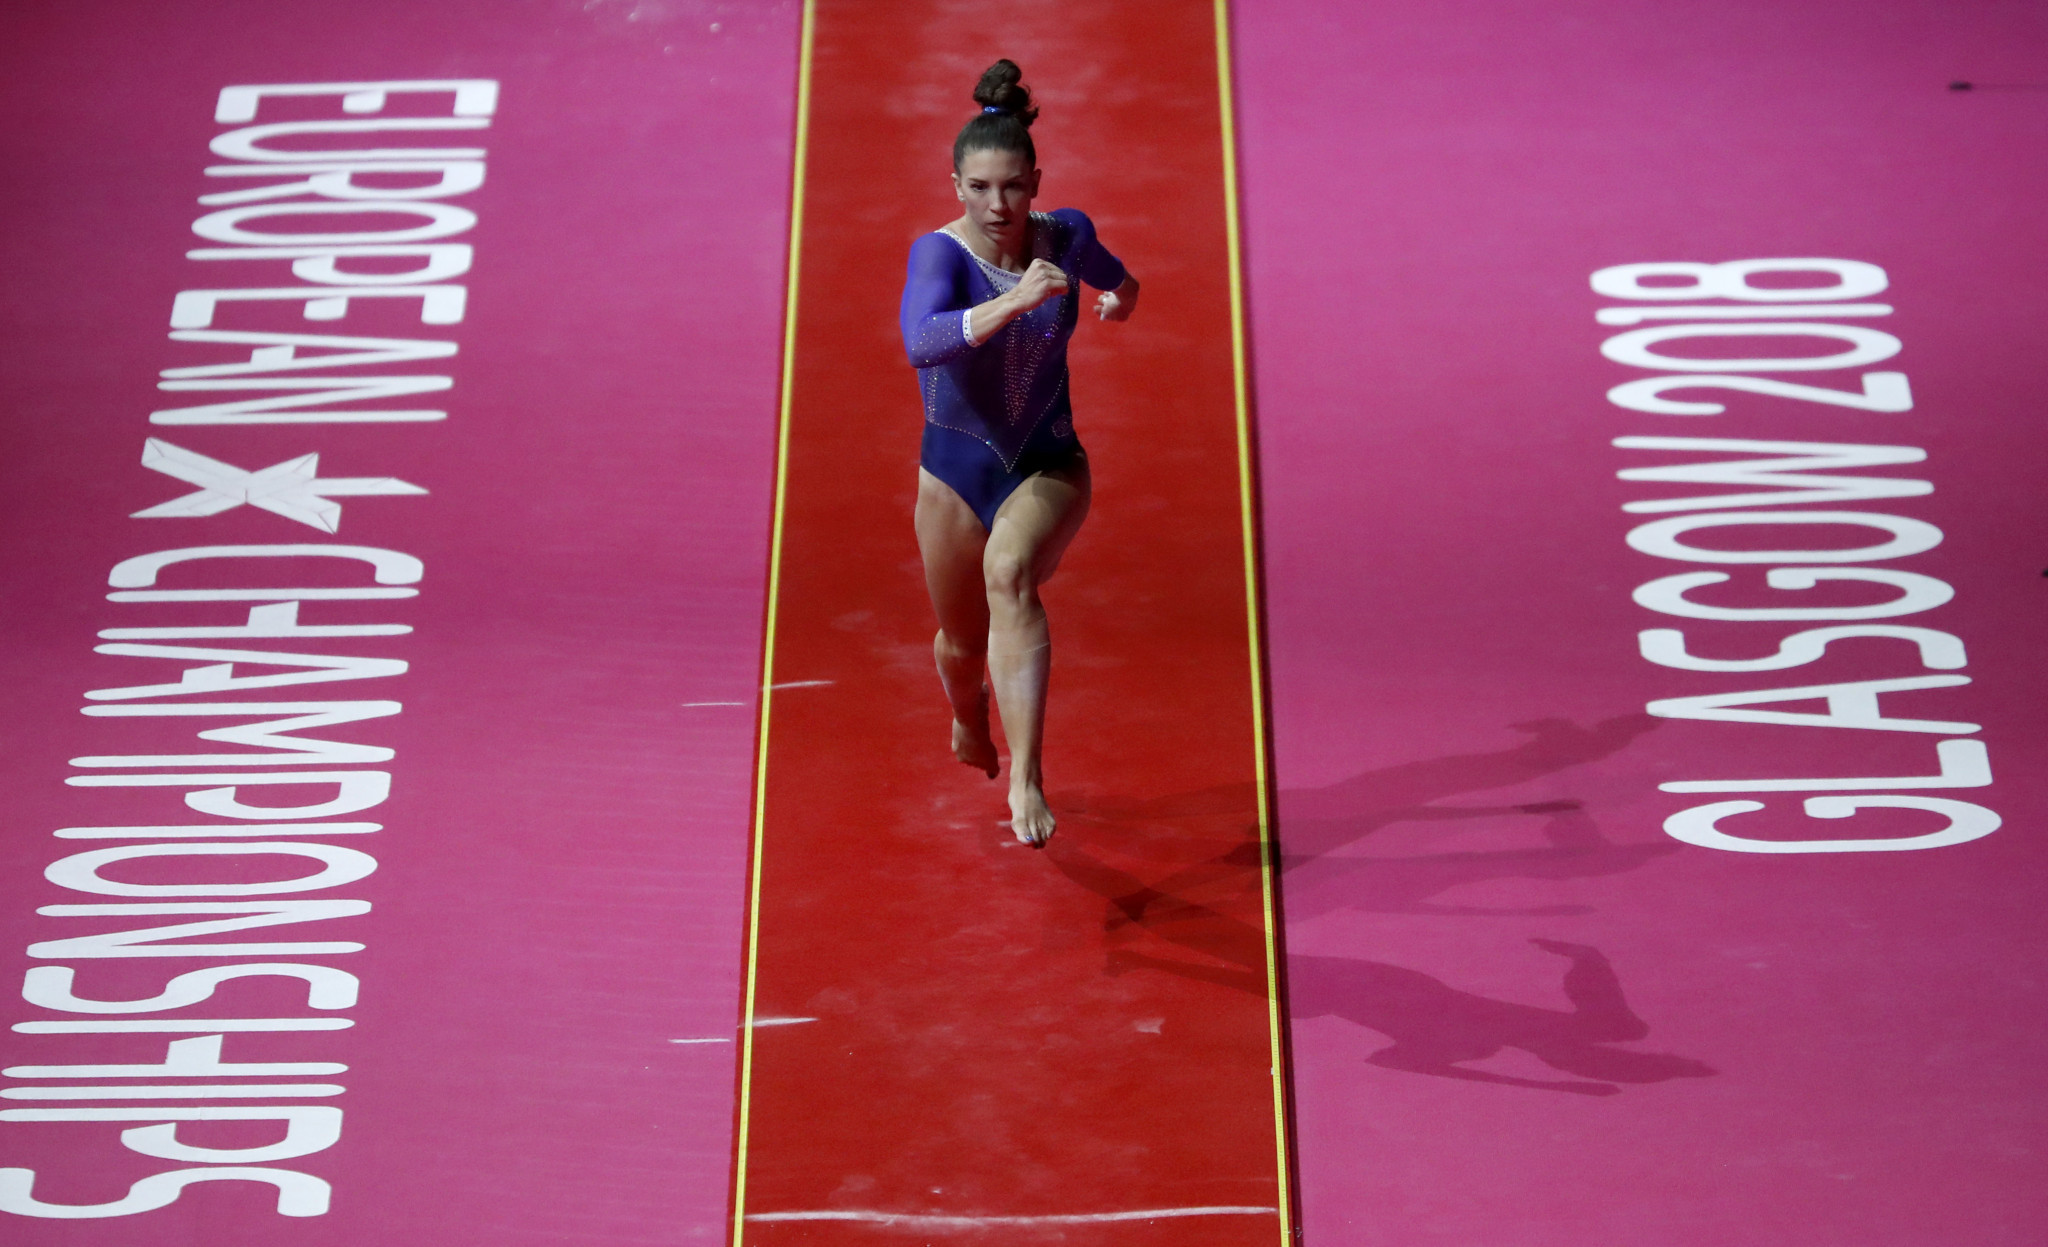 Gymnasts could also earn spots in individual apparatus finals ©Getty Images